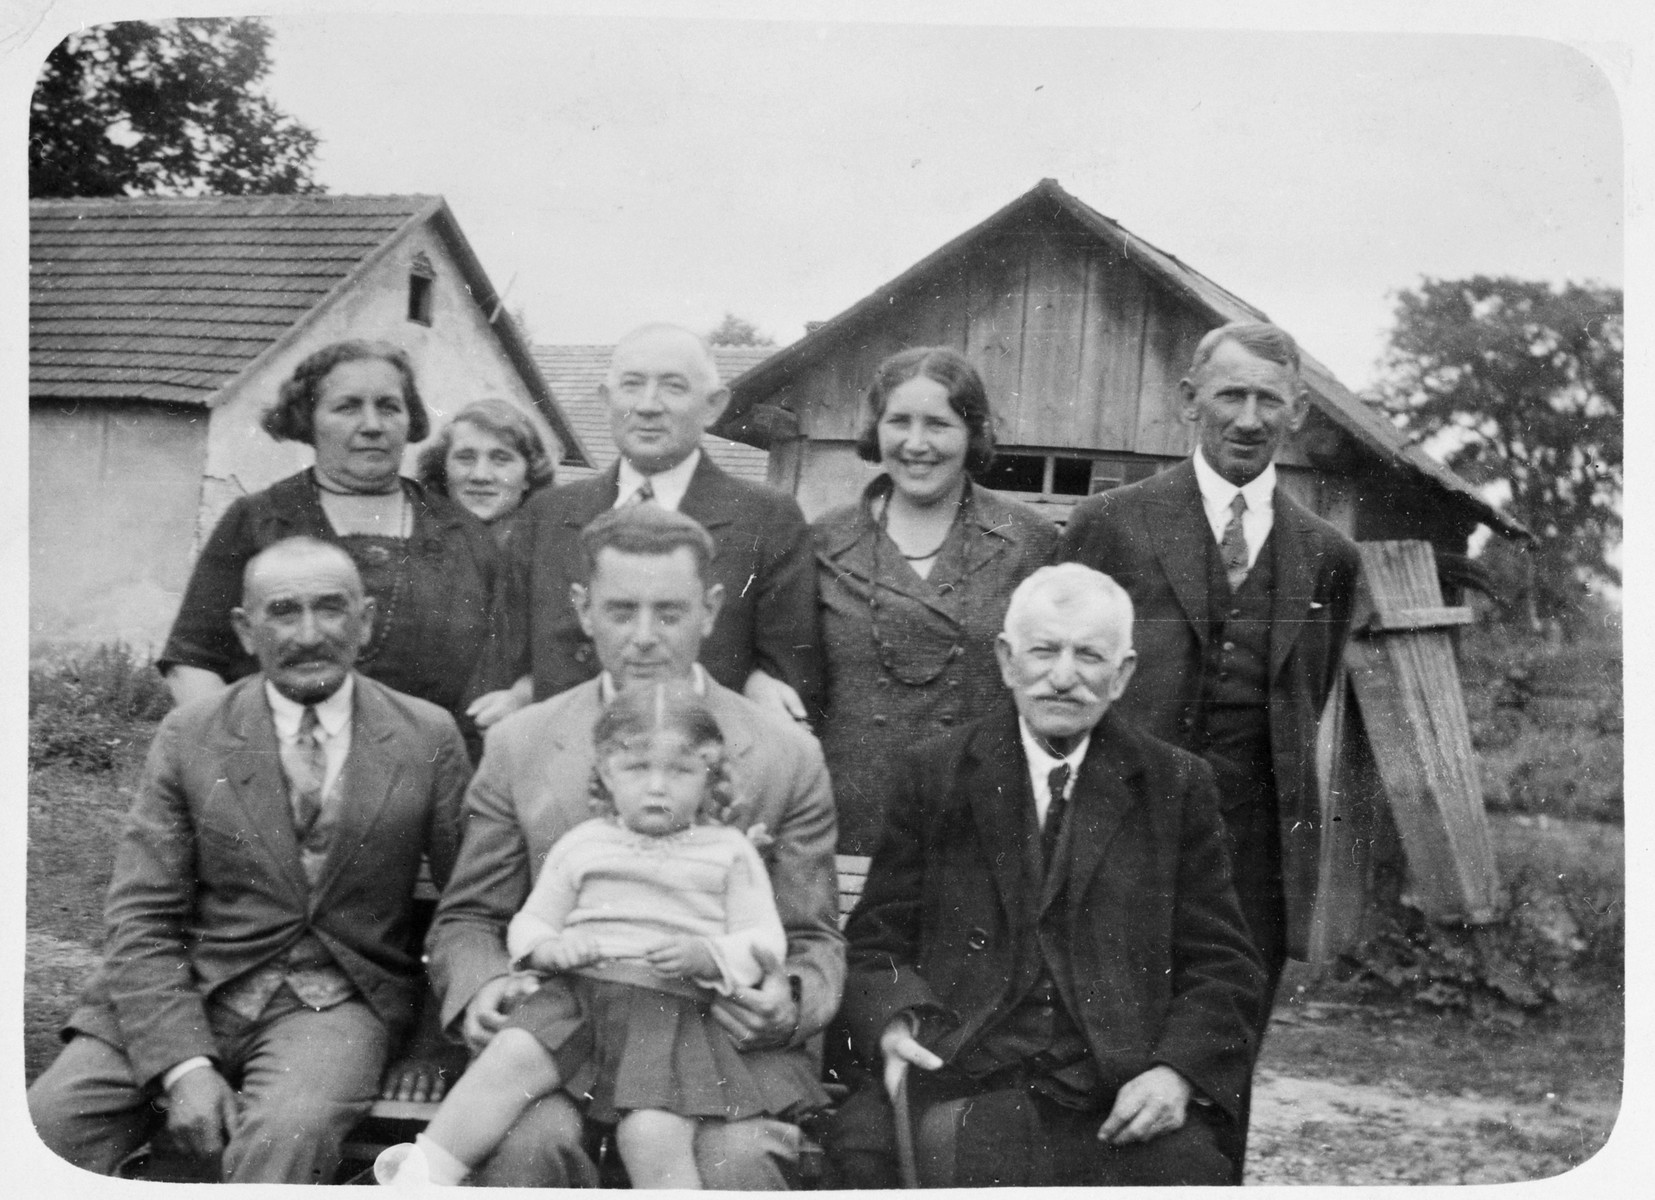 Portrait of the donor's grandparents and other extended family members in Krakow before the war.